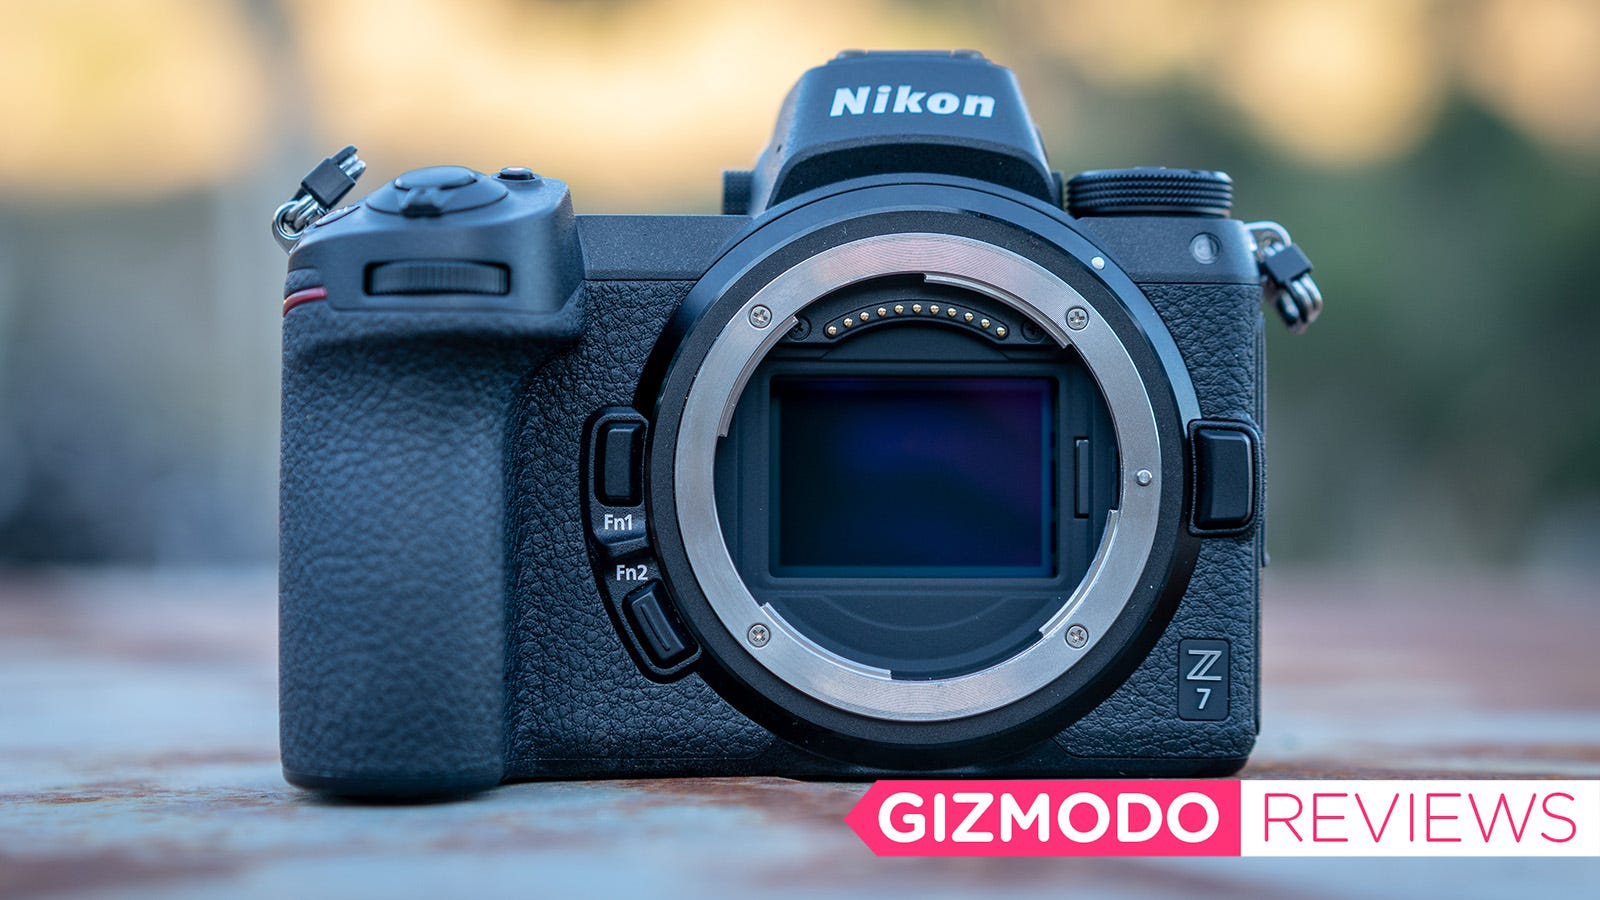 Nikon Z7 Vs Sony A7R III: The Best Full Frame Mirrorless Camera